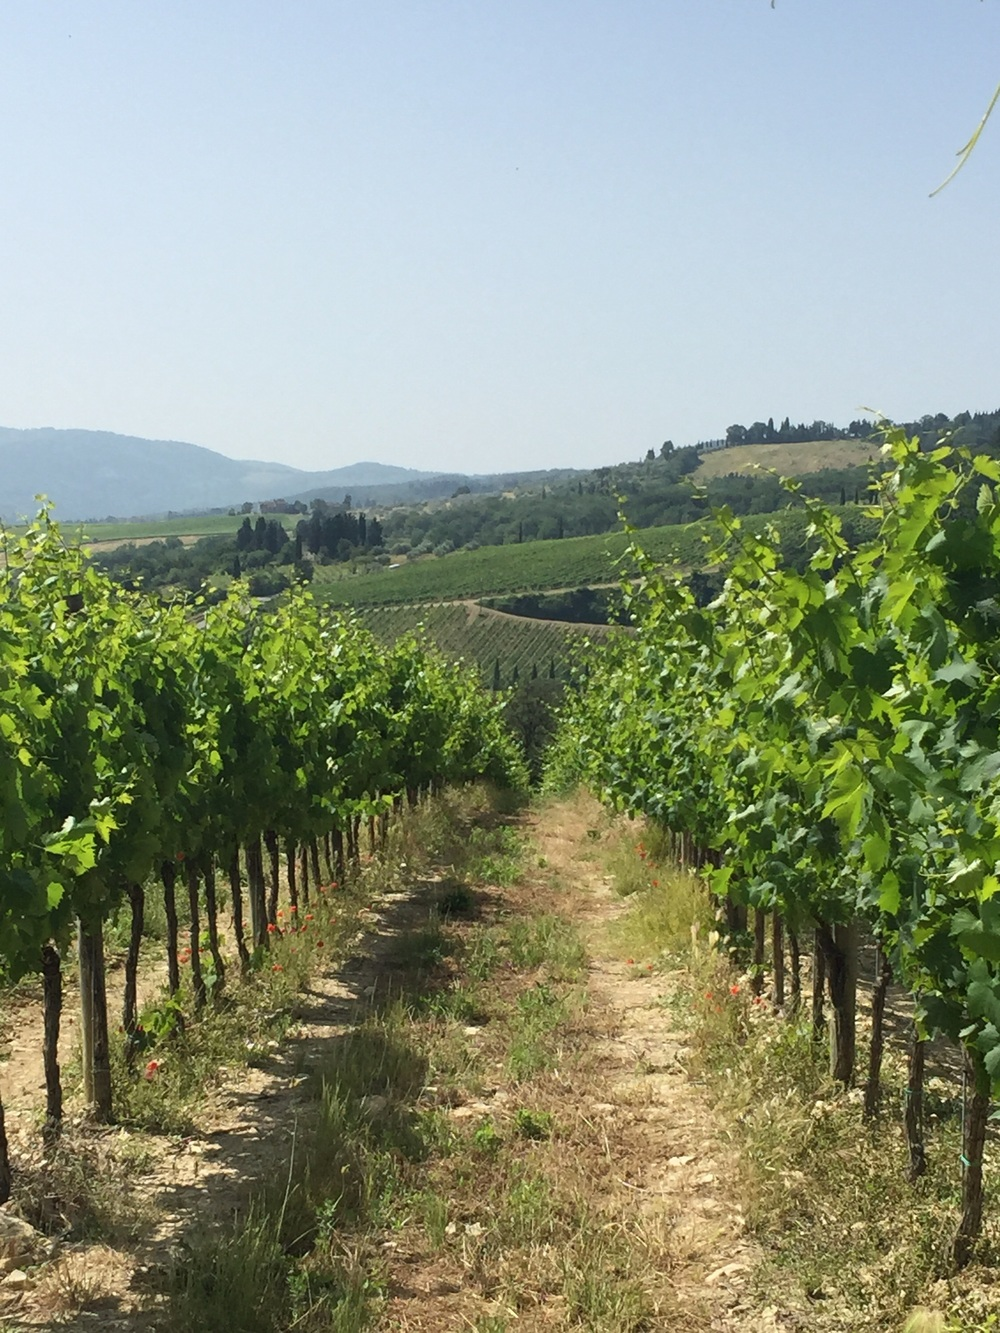 A Chianti region vineyard